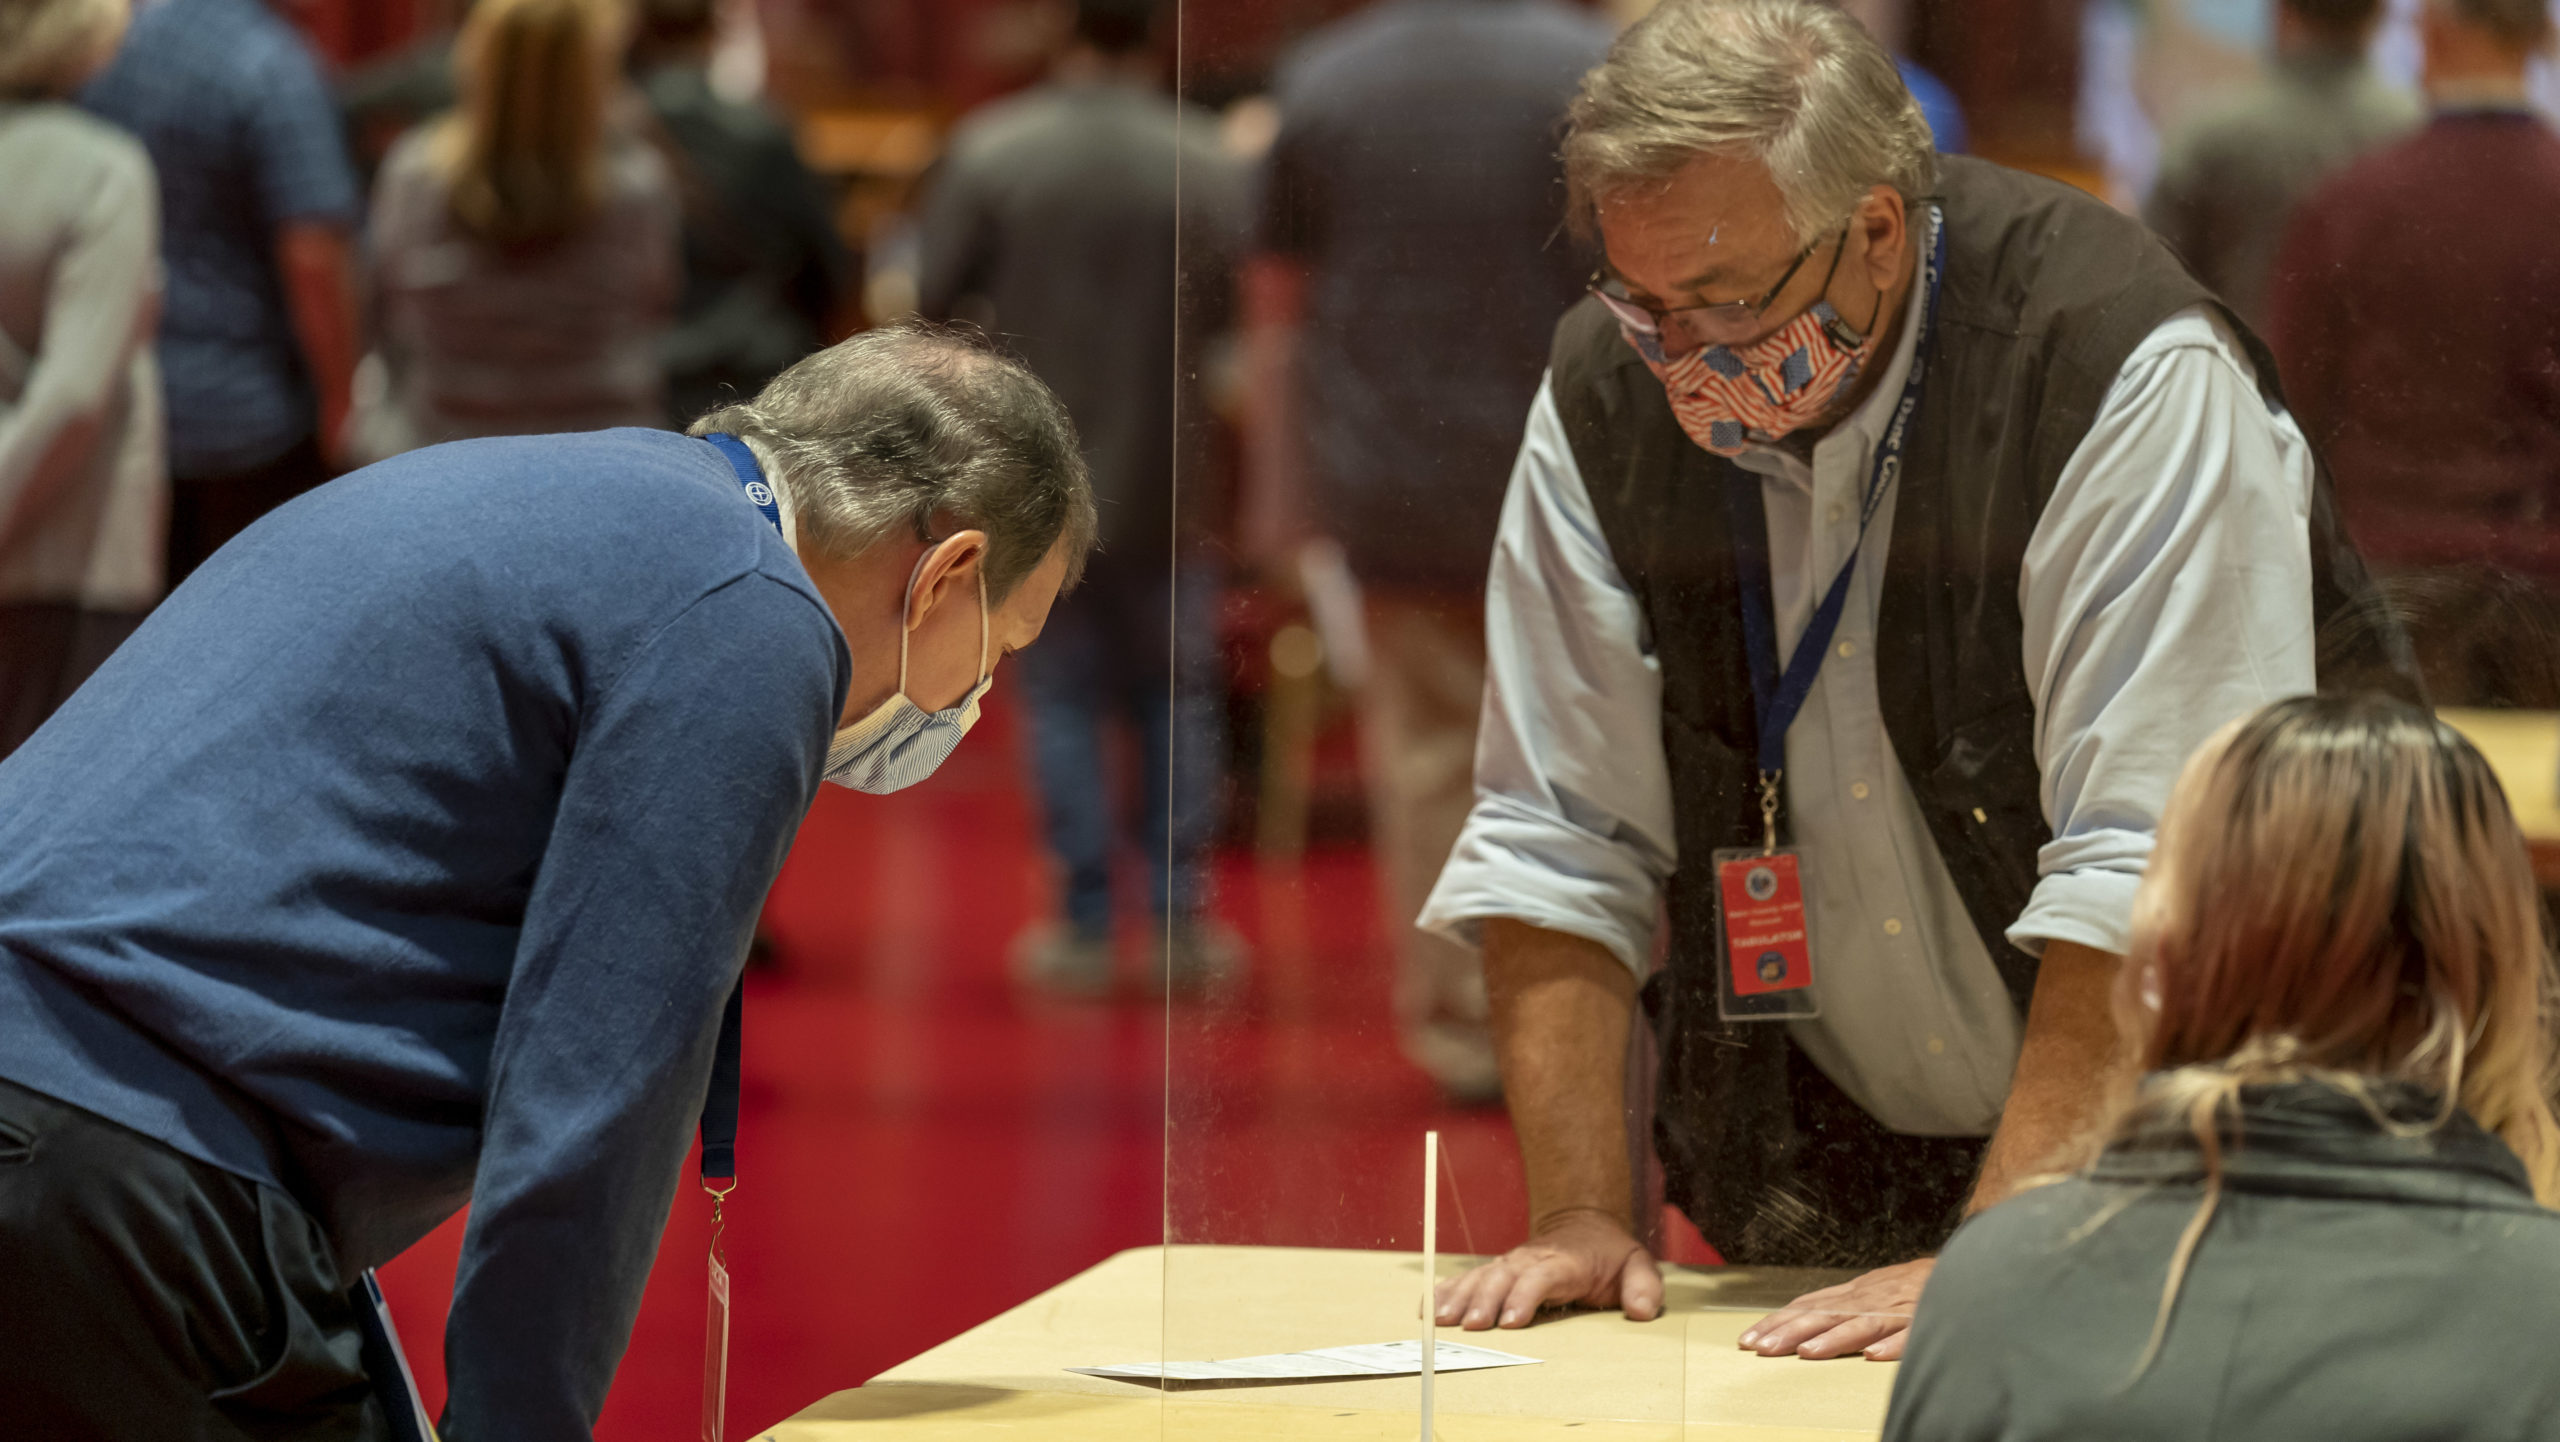 MADISON, WI - NOVEMBER 20: A representative for President Donald Trump, left, looks over a ballot during the presidential recount vote for Dane County on November 20, 2020 in Madison, Wisconsin. President Donald Trump requested a recount of ballots in Milwaukee and Dane counties in Wisconsin, hoping to overturn his narrow defeat in the state to Democratic presidential nominee Joe Biden. Trump's campaign paid the state $3 million to cover the cost of the recount. (Photo by Andy Manis/Getty Images)